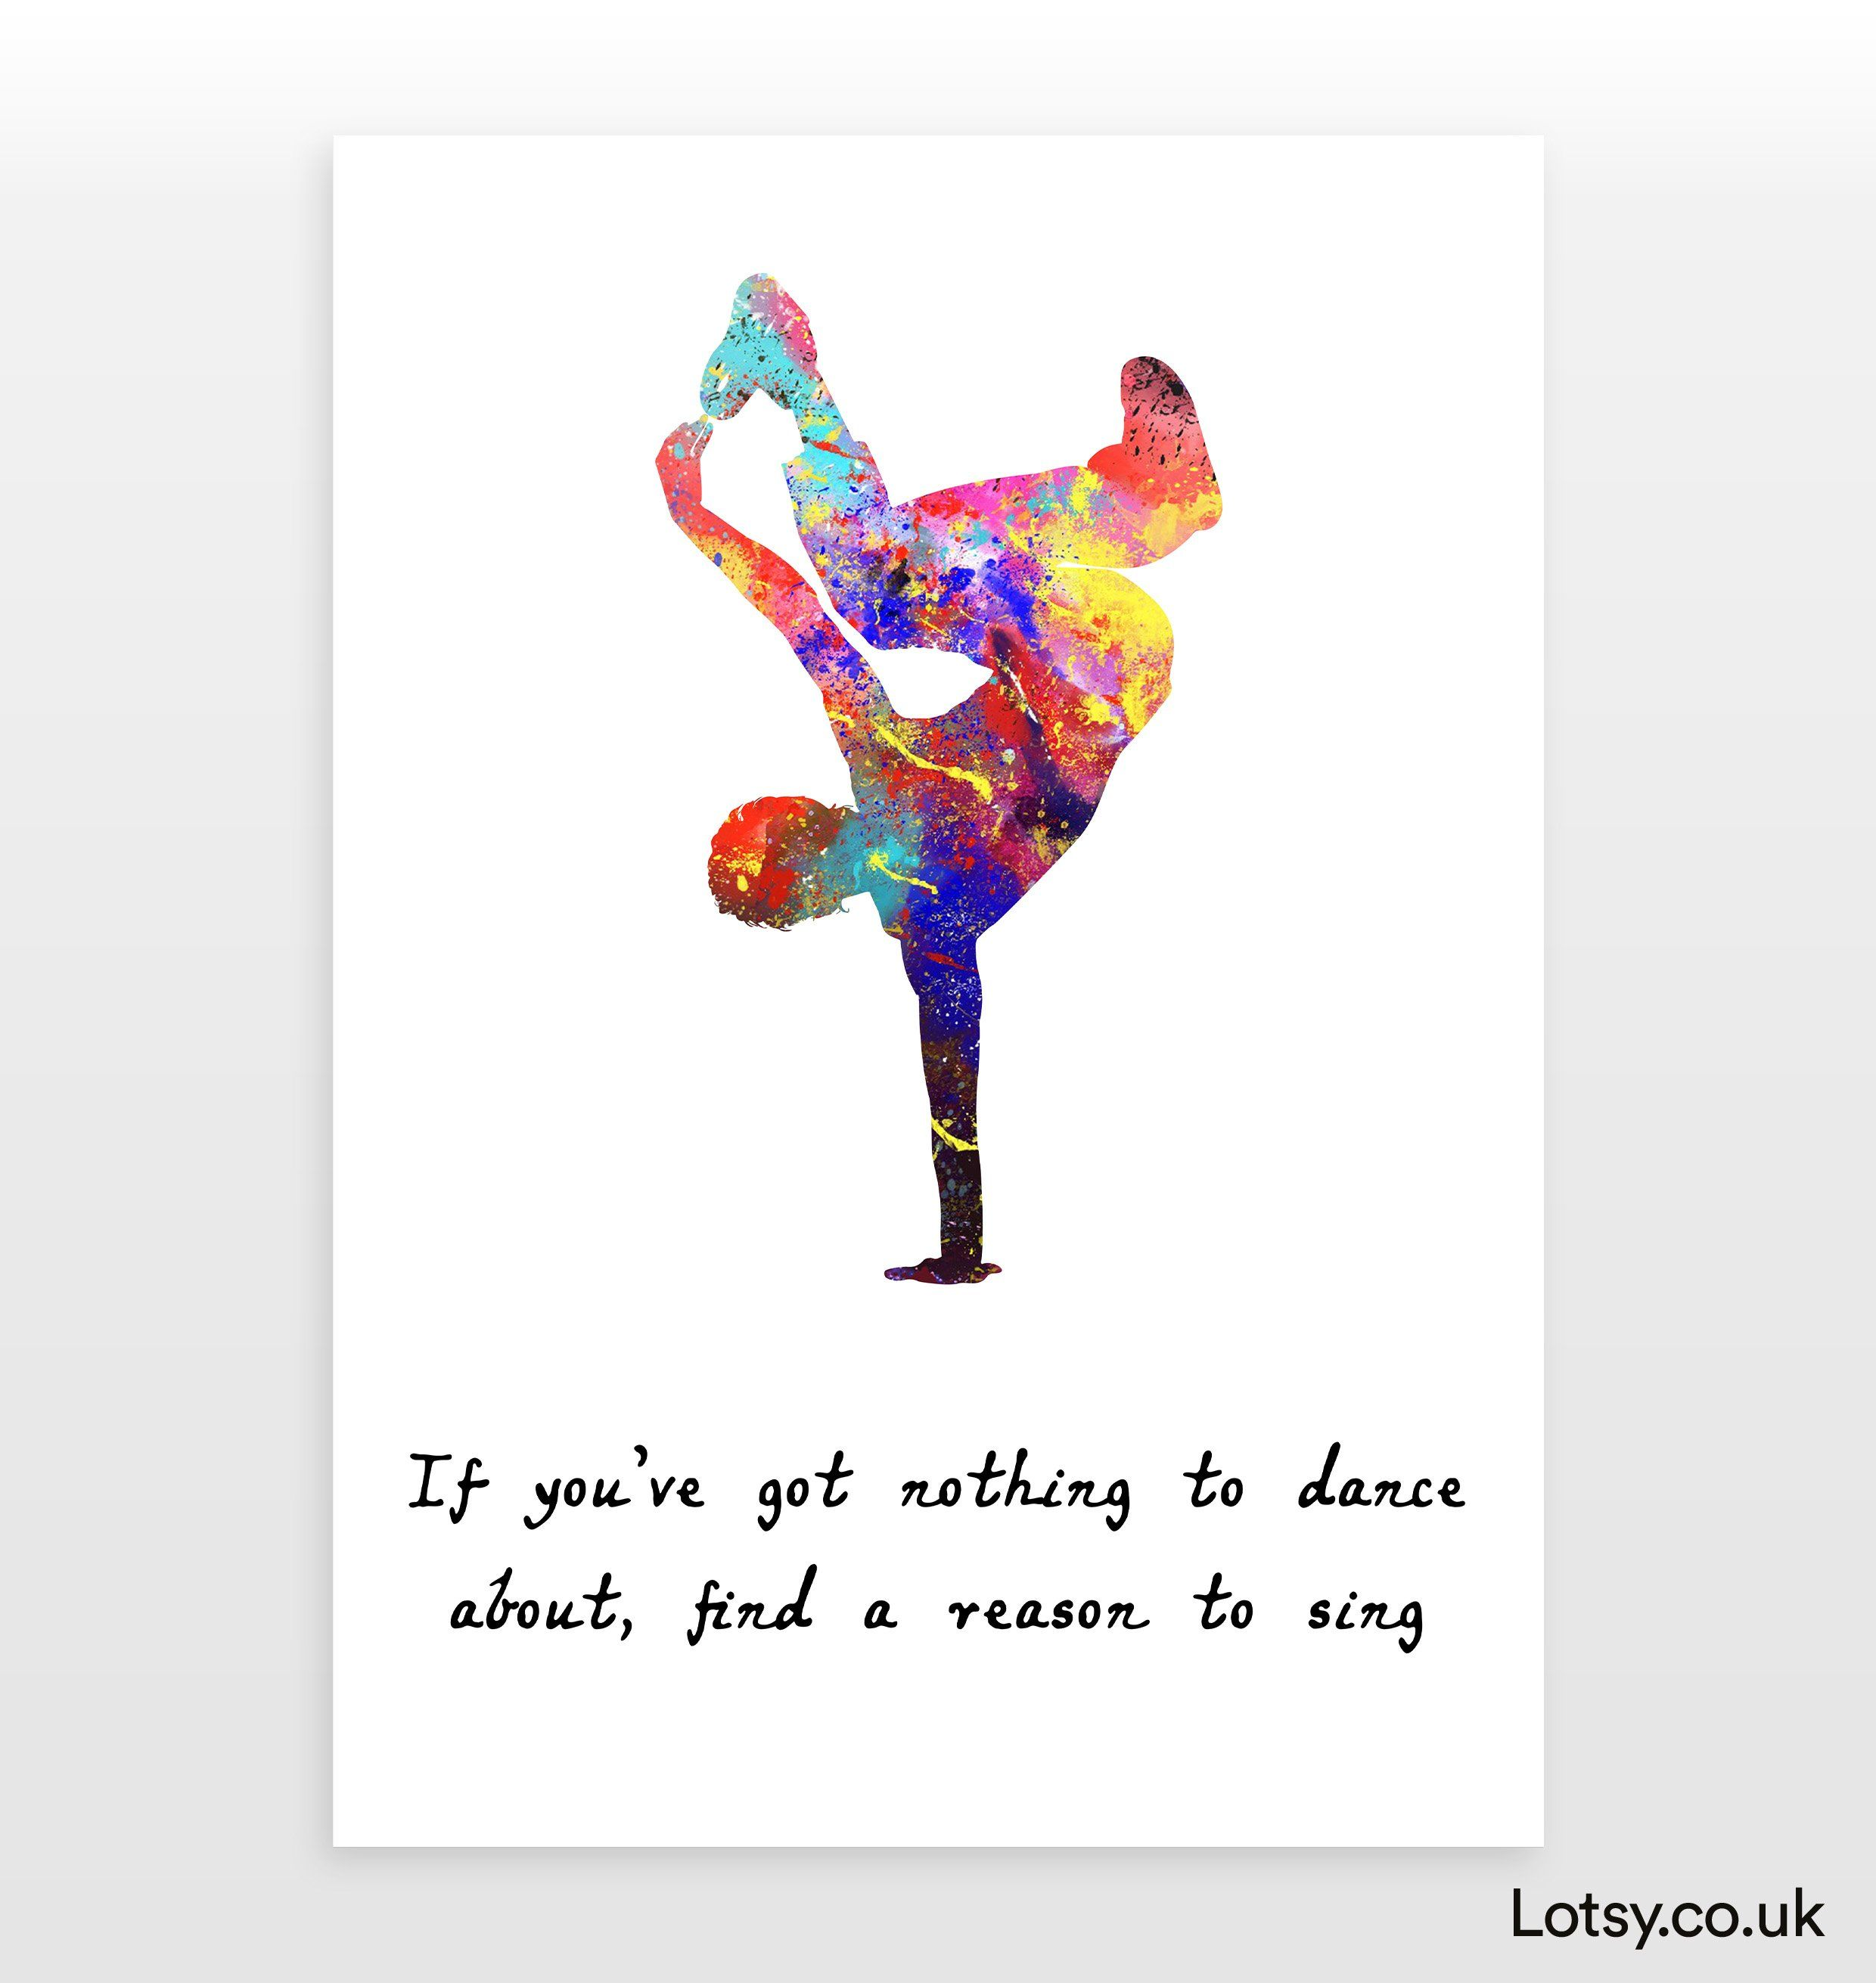 Dancer Quote - If you've got nothing to dance about, find a reason to sing - A6 - (105mm x 148mm) (4.1inch x 5.8inch)